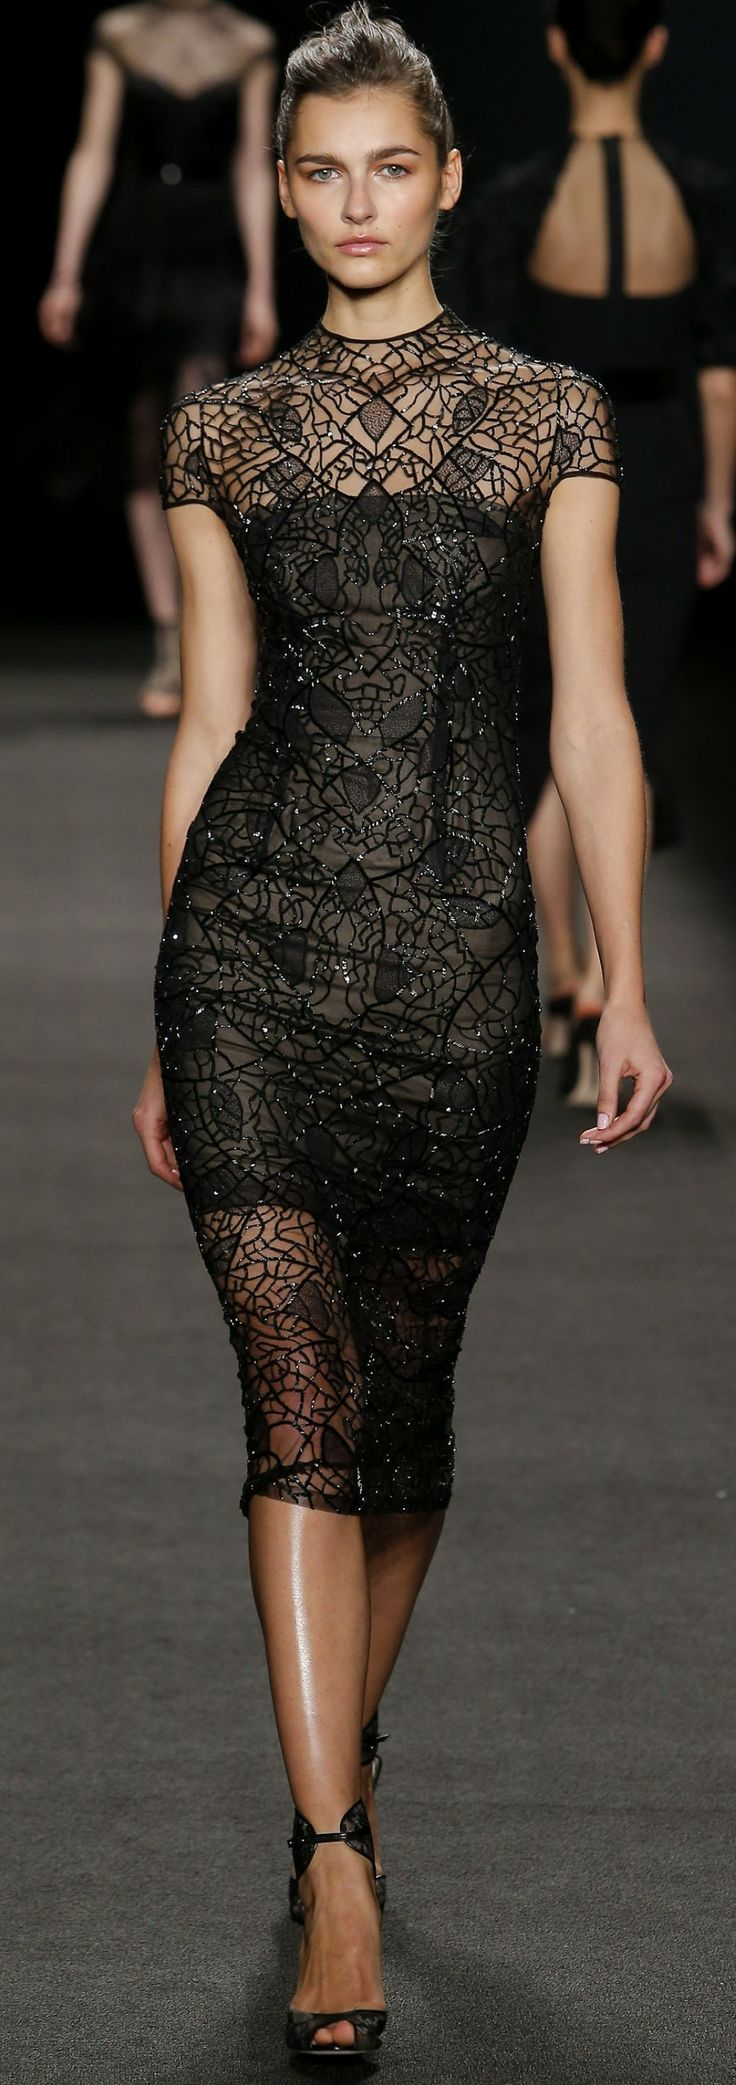 Monique Lhuillier, fall 2014.